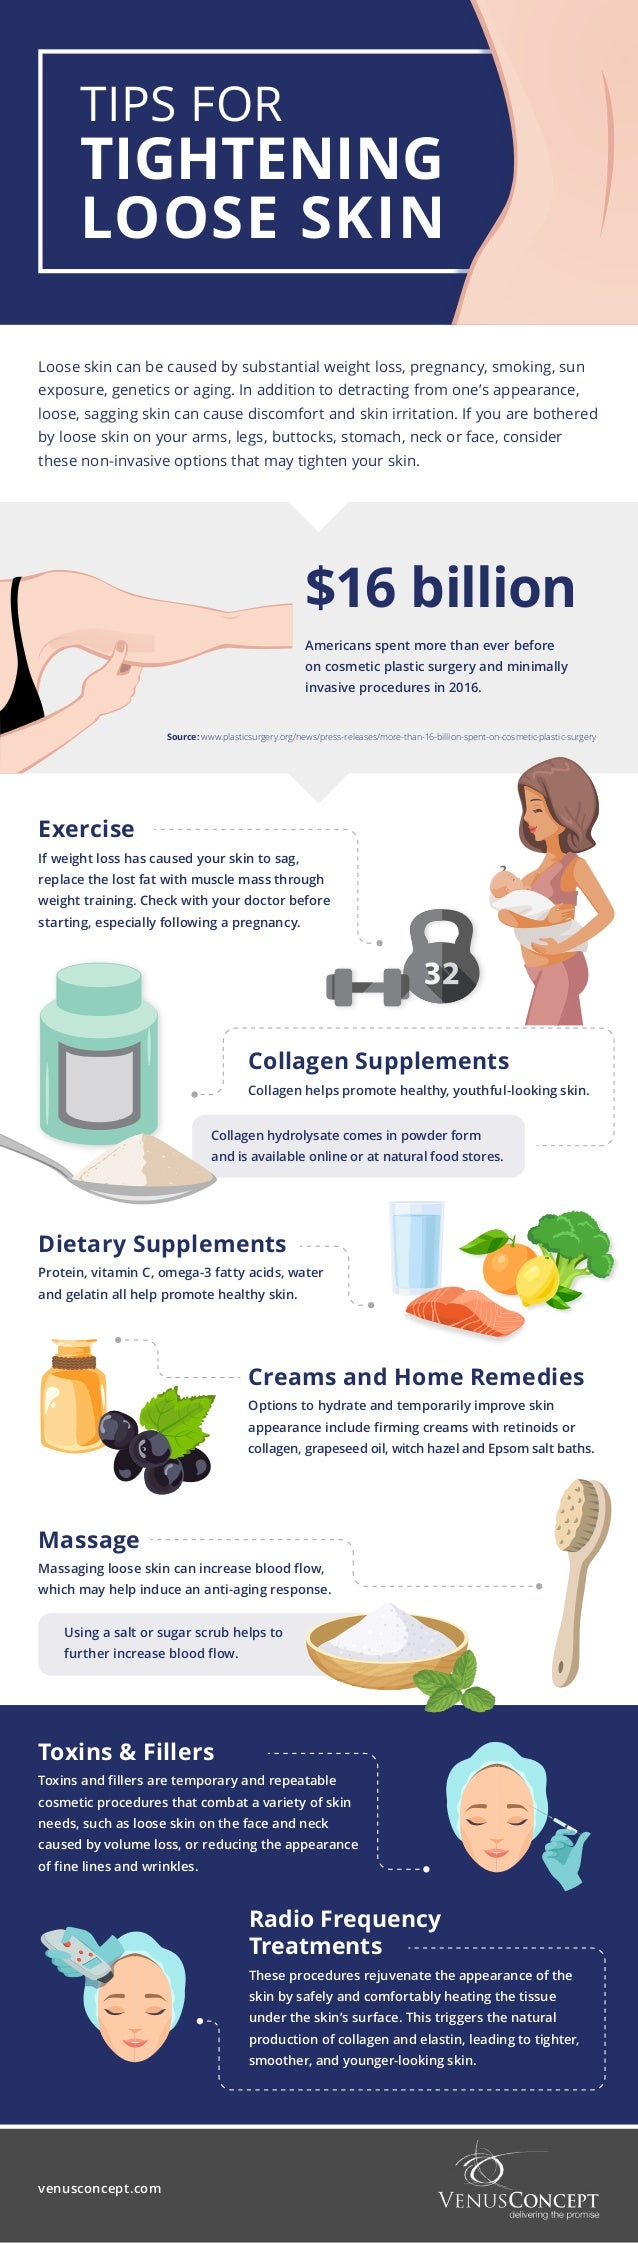 Loose skin can be caused by substantial weight loss, pregnancy, smoking, sun exposure, genetics or aging. In addition to d...